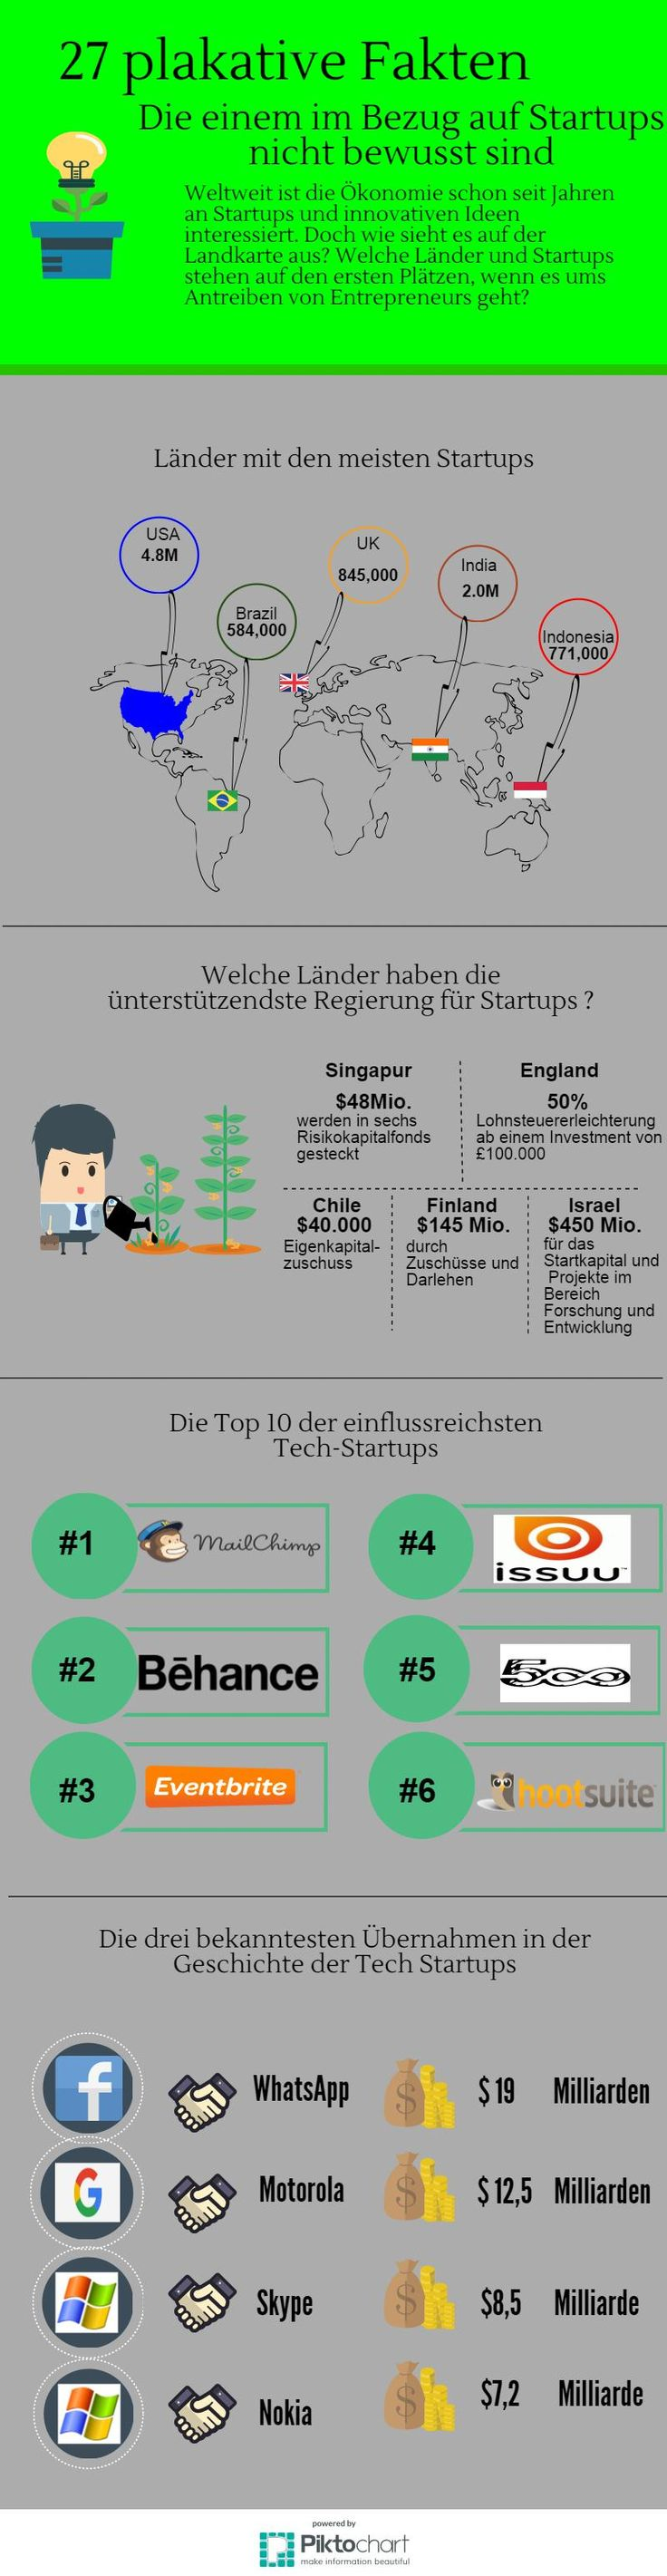 27 facts about startups you didn't know about #startplatz #startups